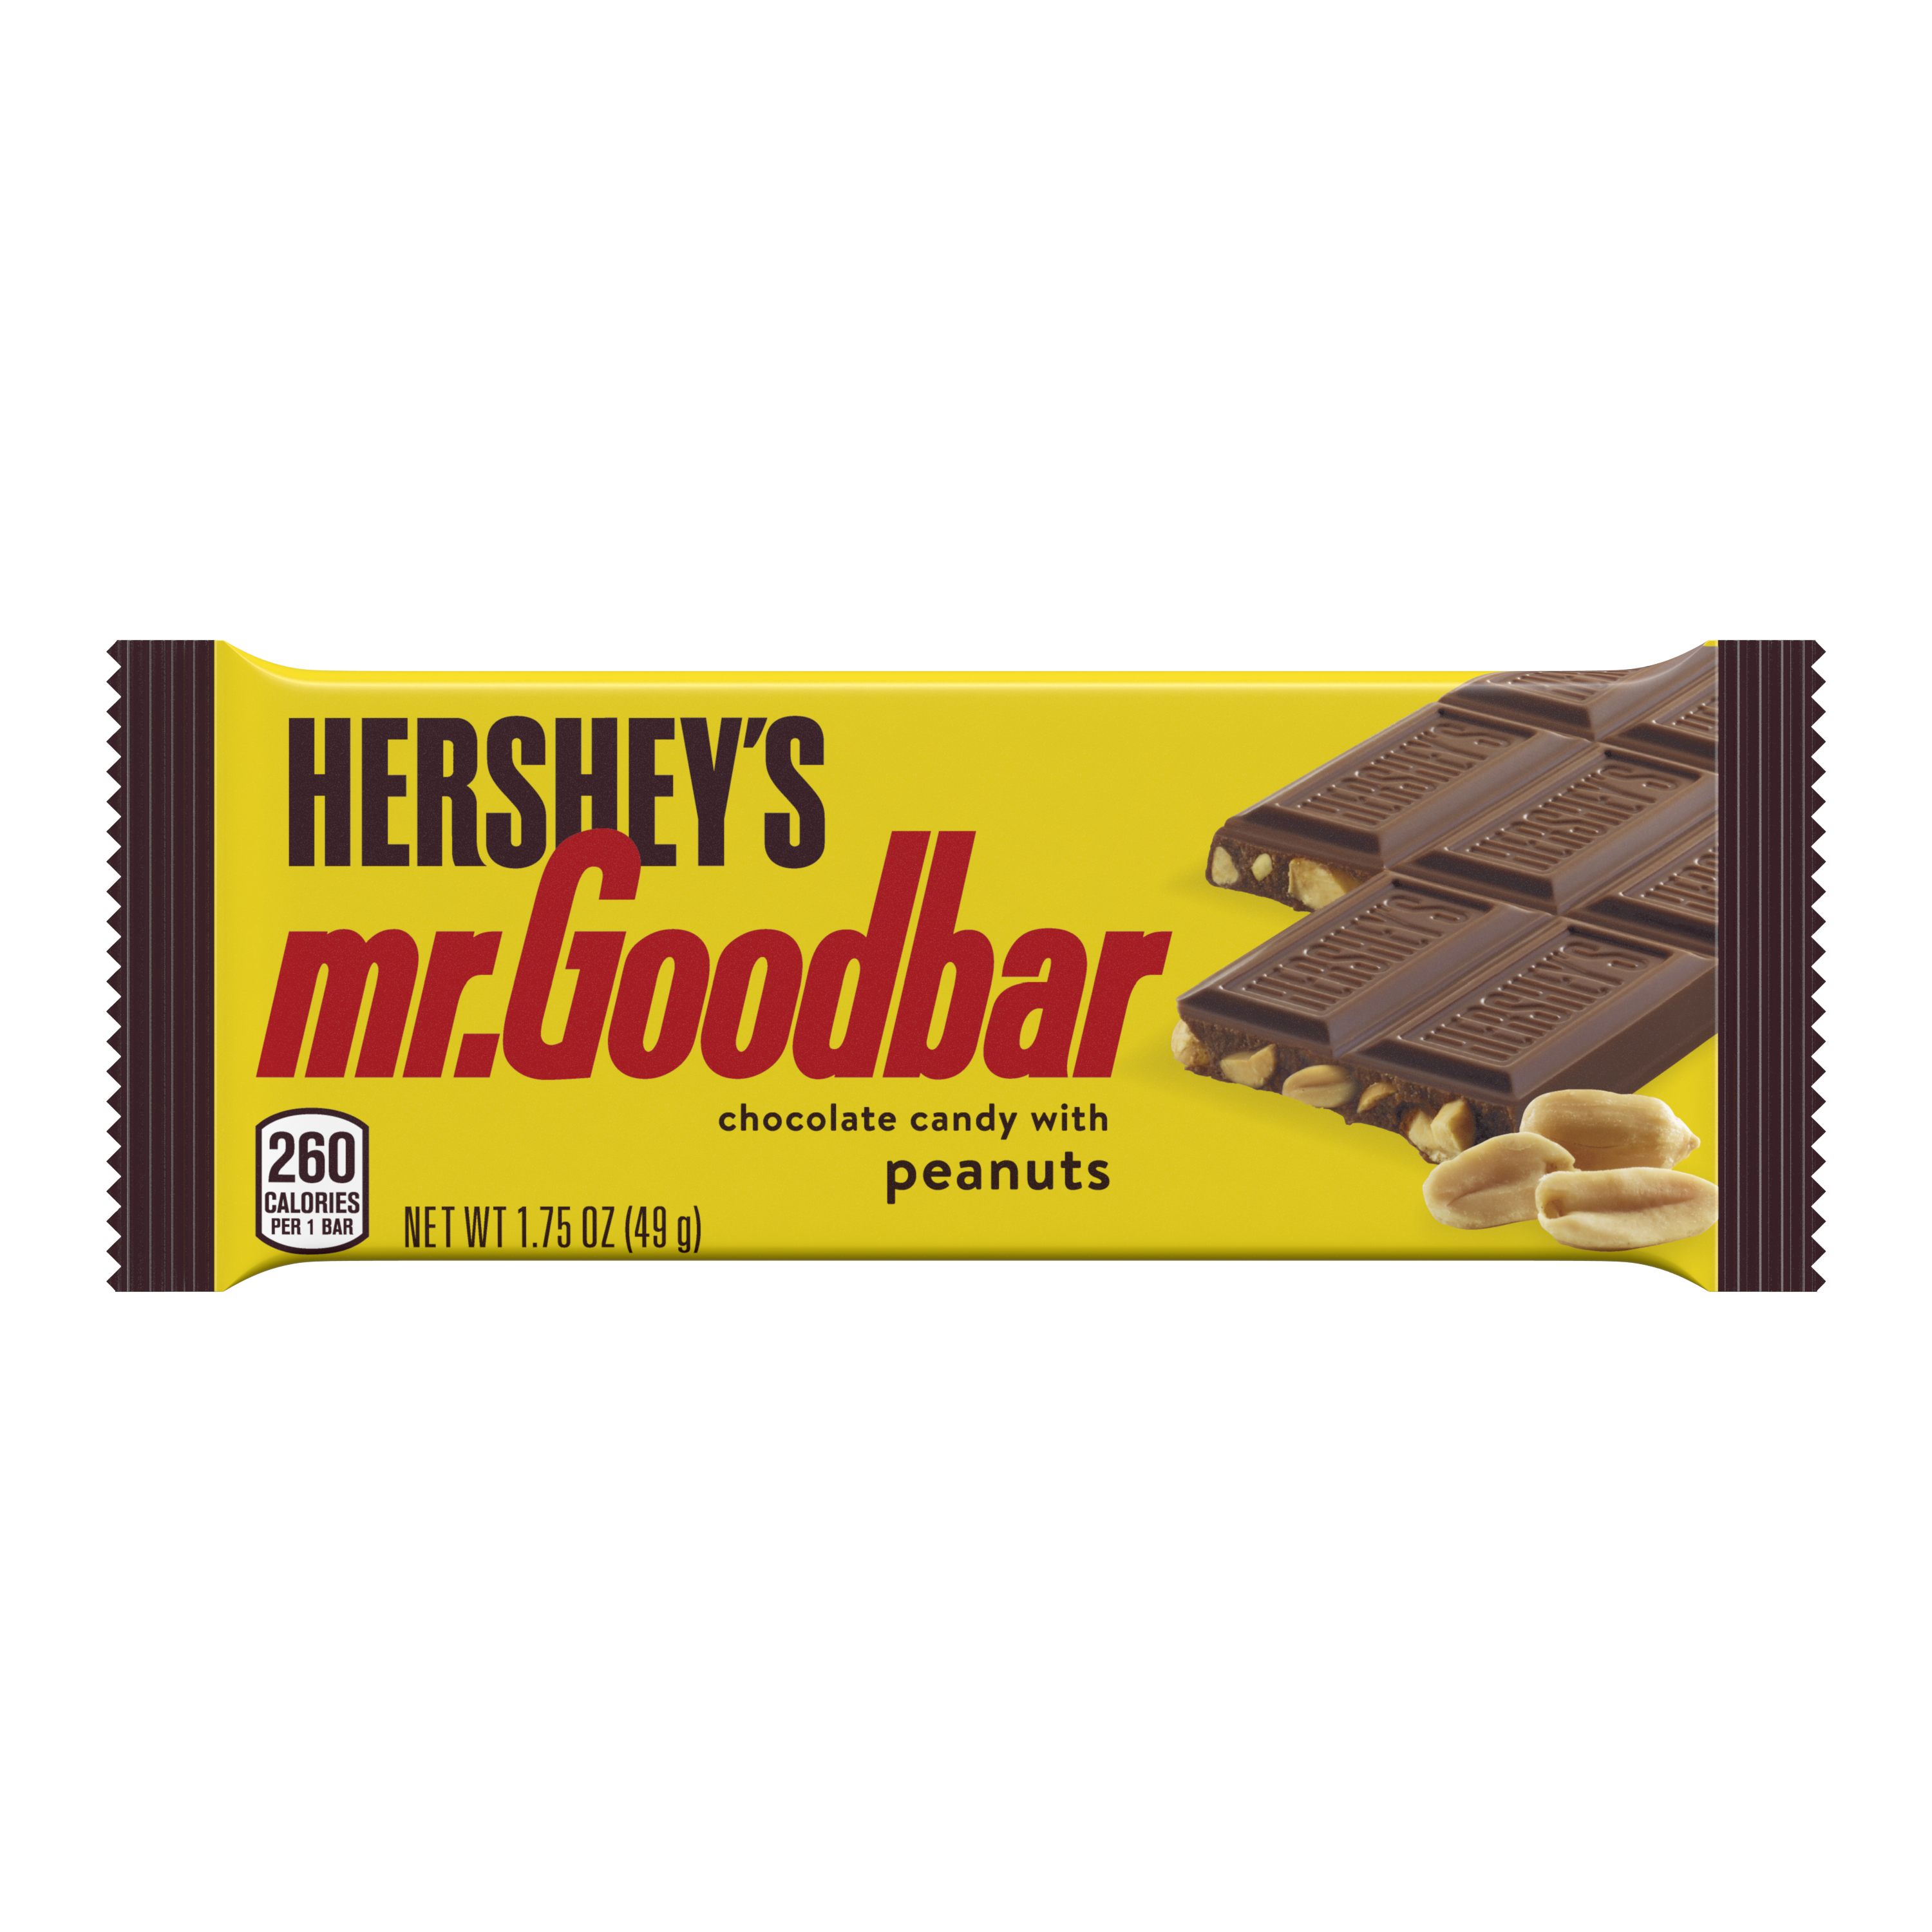 HERSHEY'S MR. GOODBAR Milk Chocolate with Peanuts Candy Bar, 1.75 oz - Front of Package